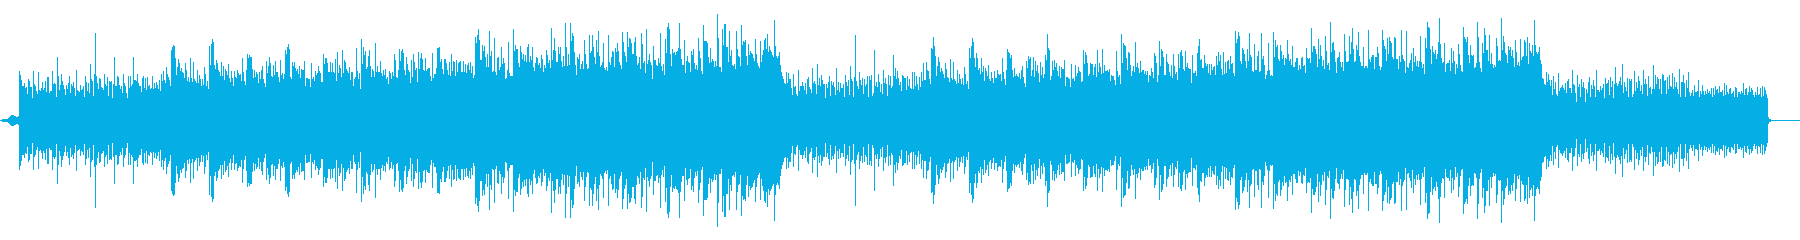 Pops that are refreshing, impressive, and gradually rise's reproduced waveform